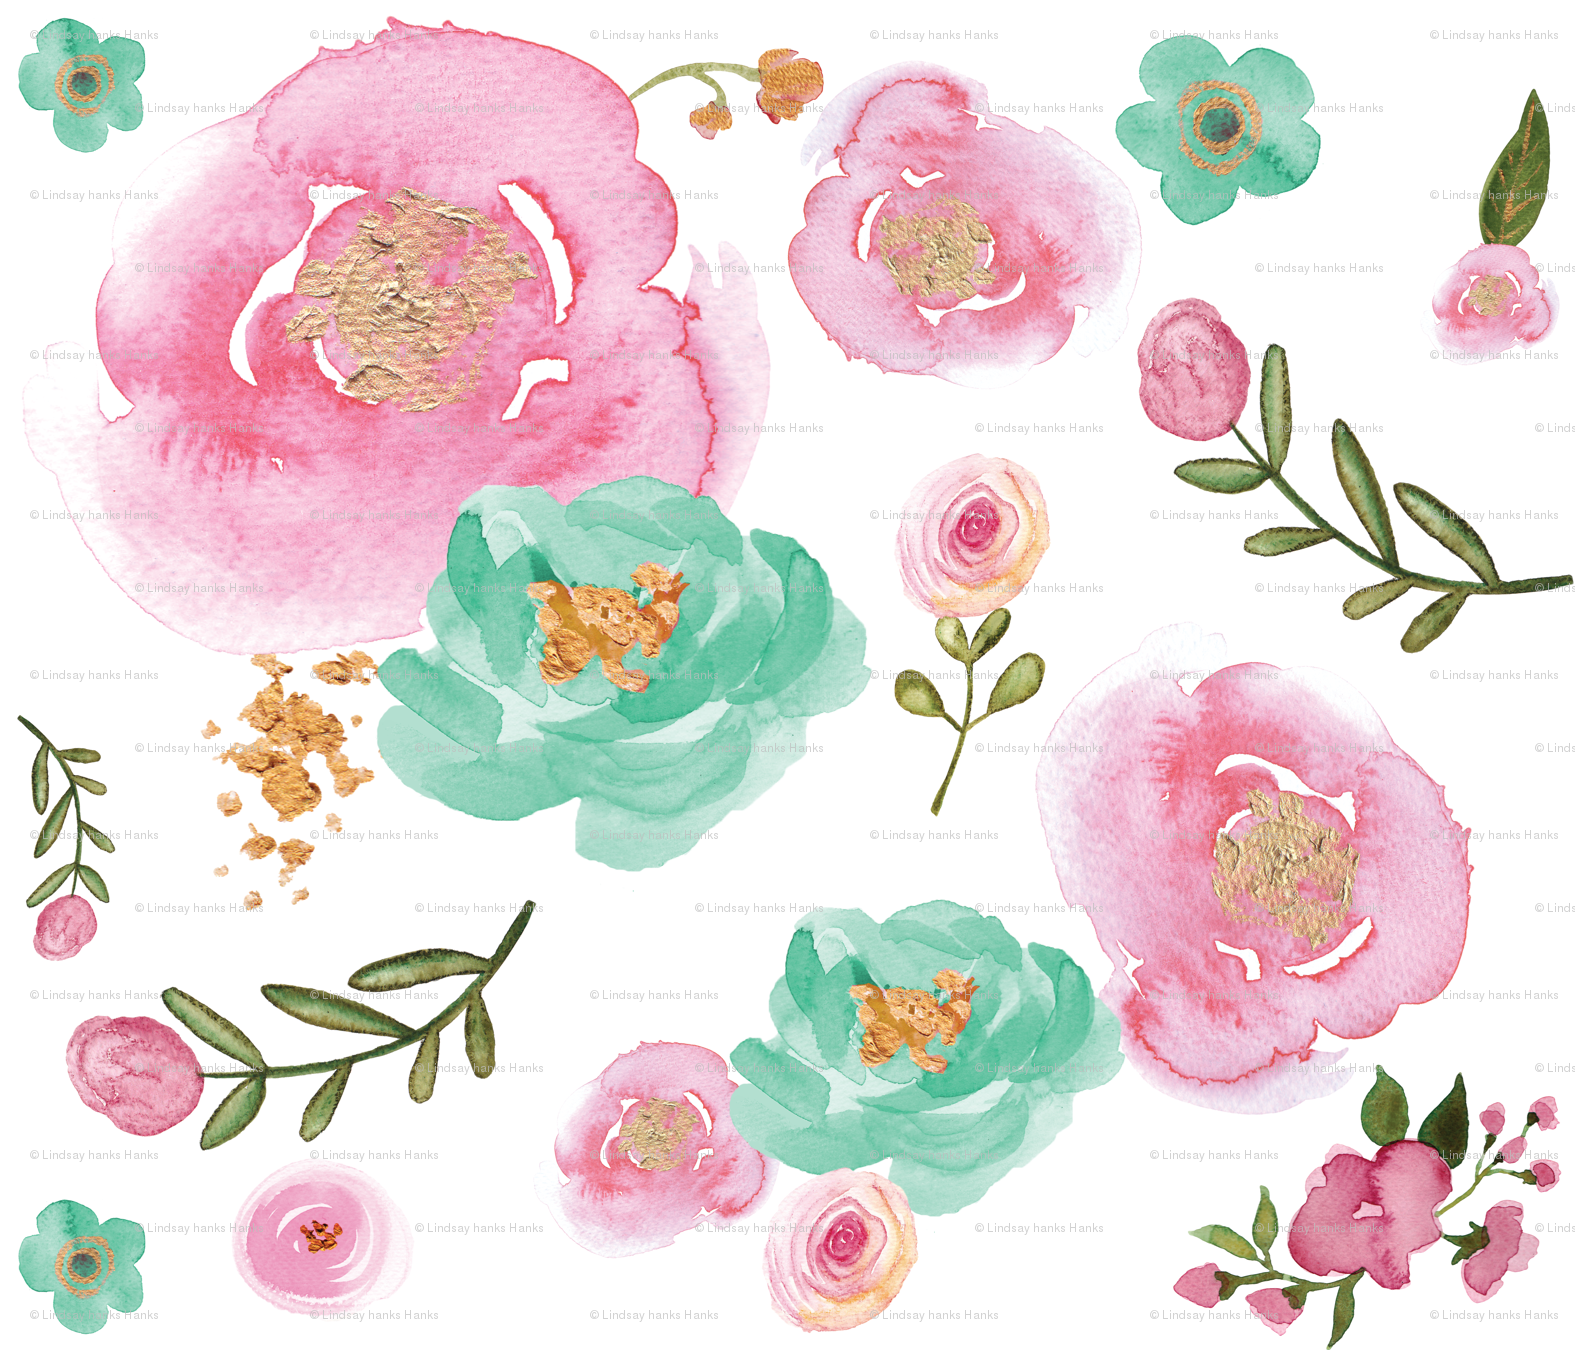 Watercolor pink mint and gold floral fabric twodreamsshop watercolor pink mint and gold floral fabric twodreamsshop spoonflower mightylinksfo